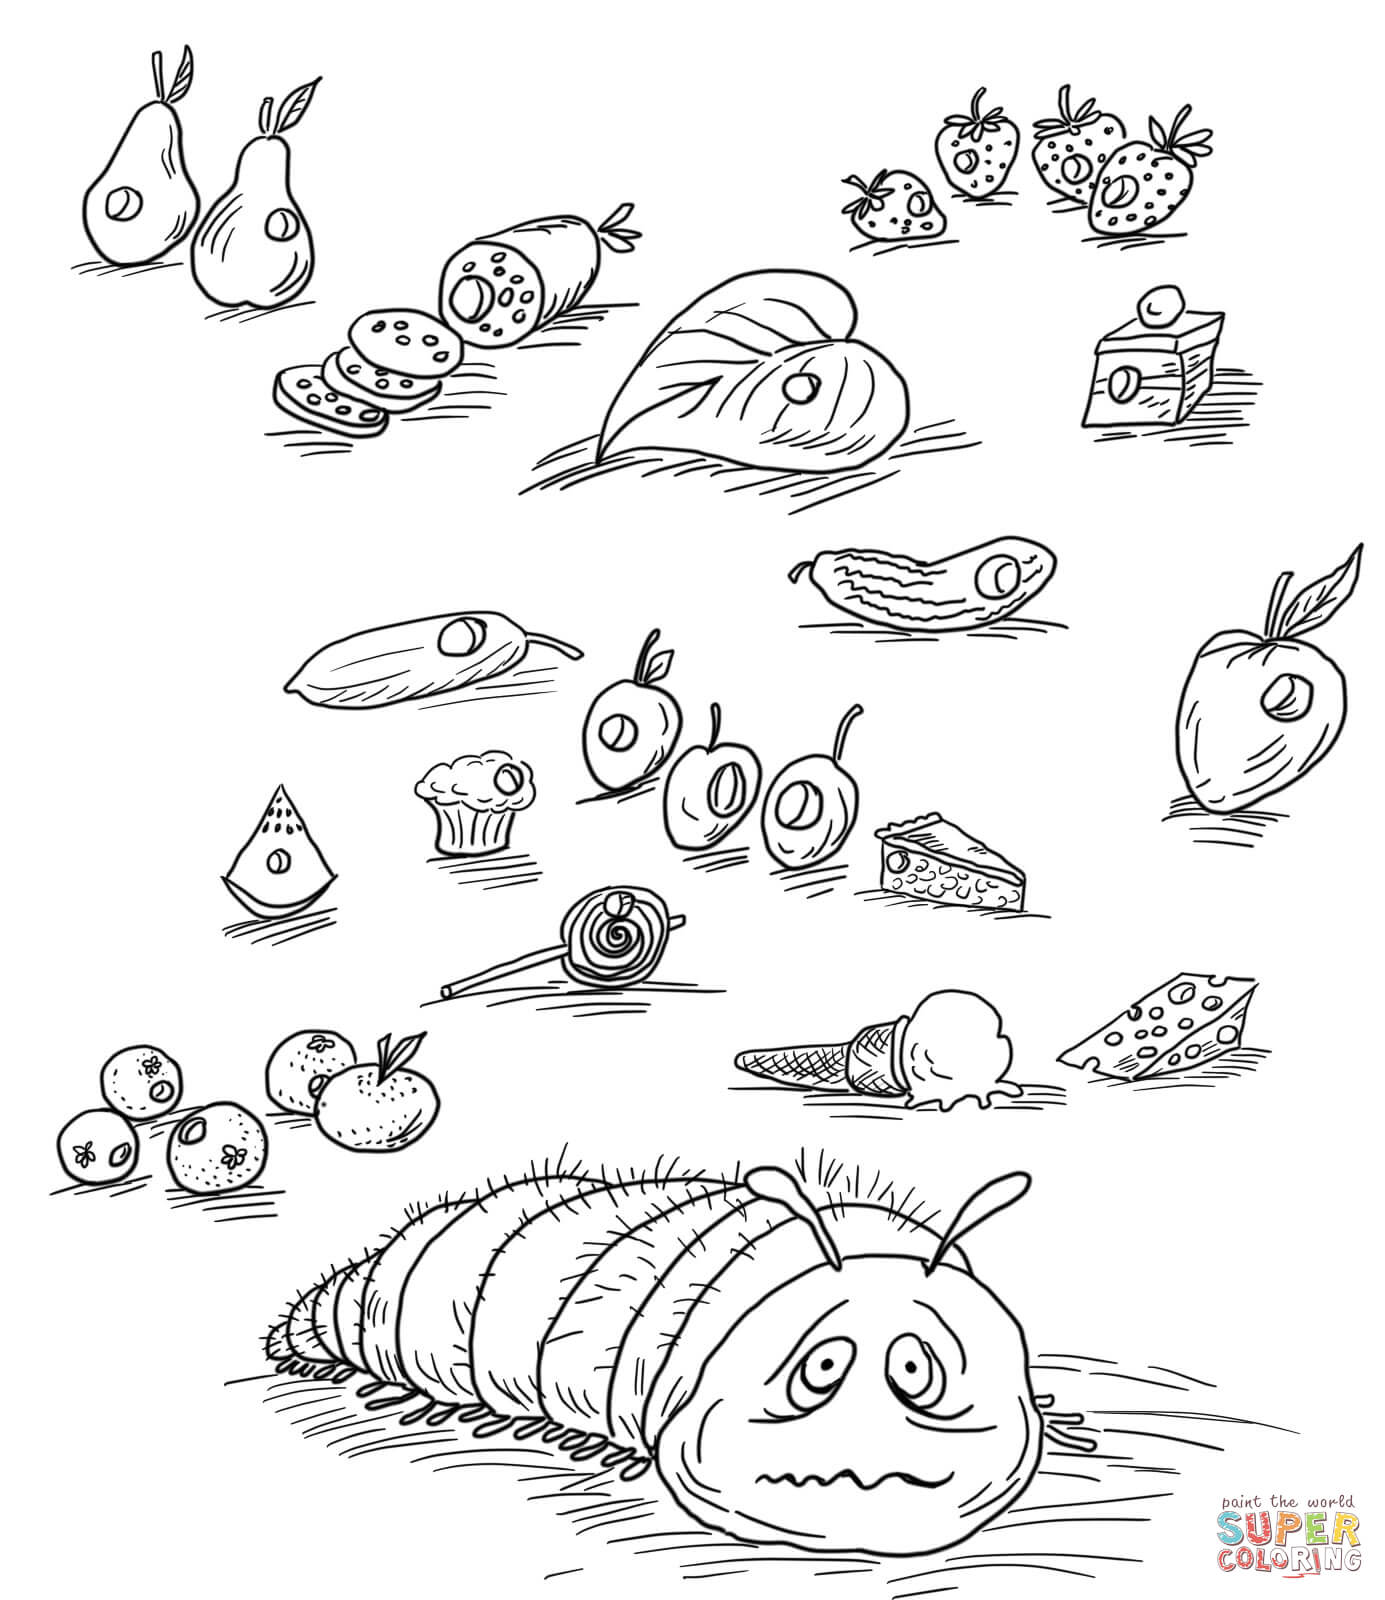 the-very-hungry-caterpillar-coloring-page-0004-q1